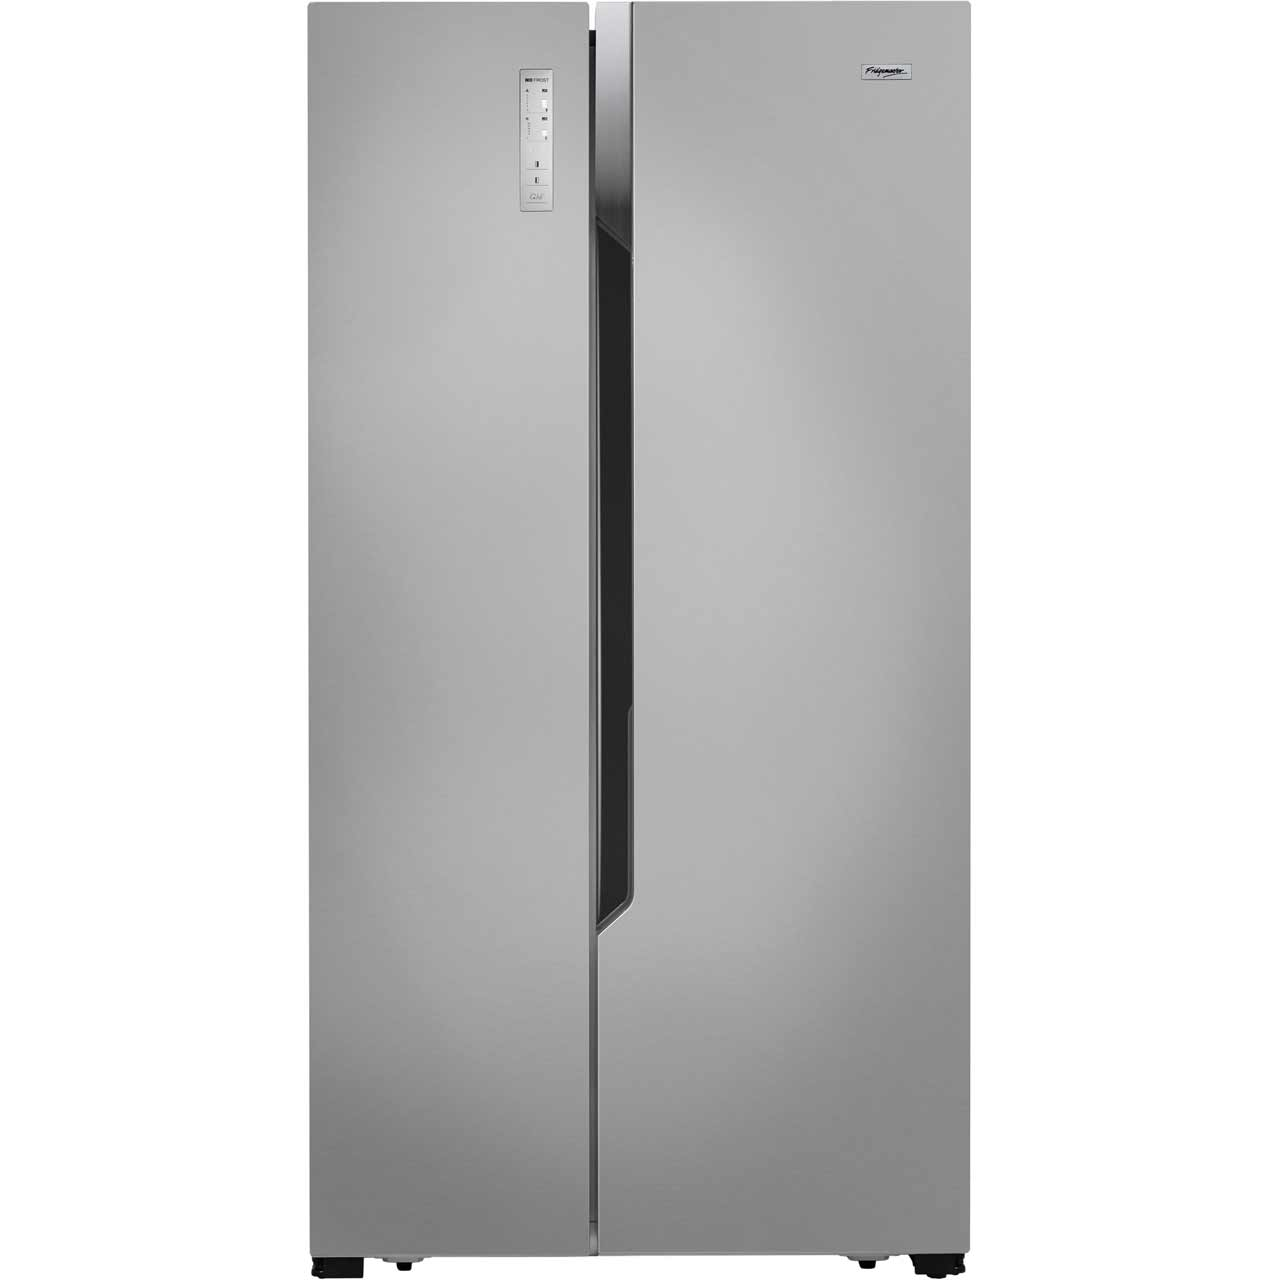 Fridgemaster MS91518FFS Free Standing American Fridge Freezer in Silver